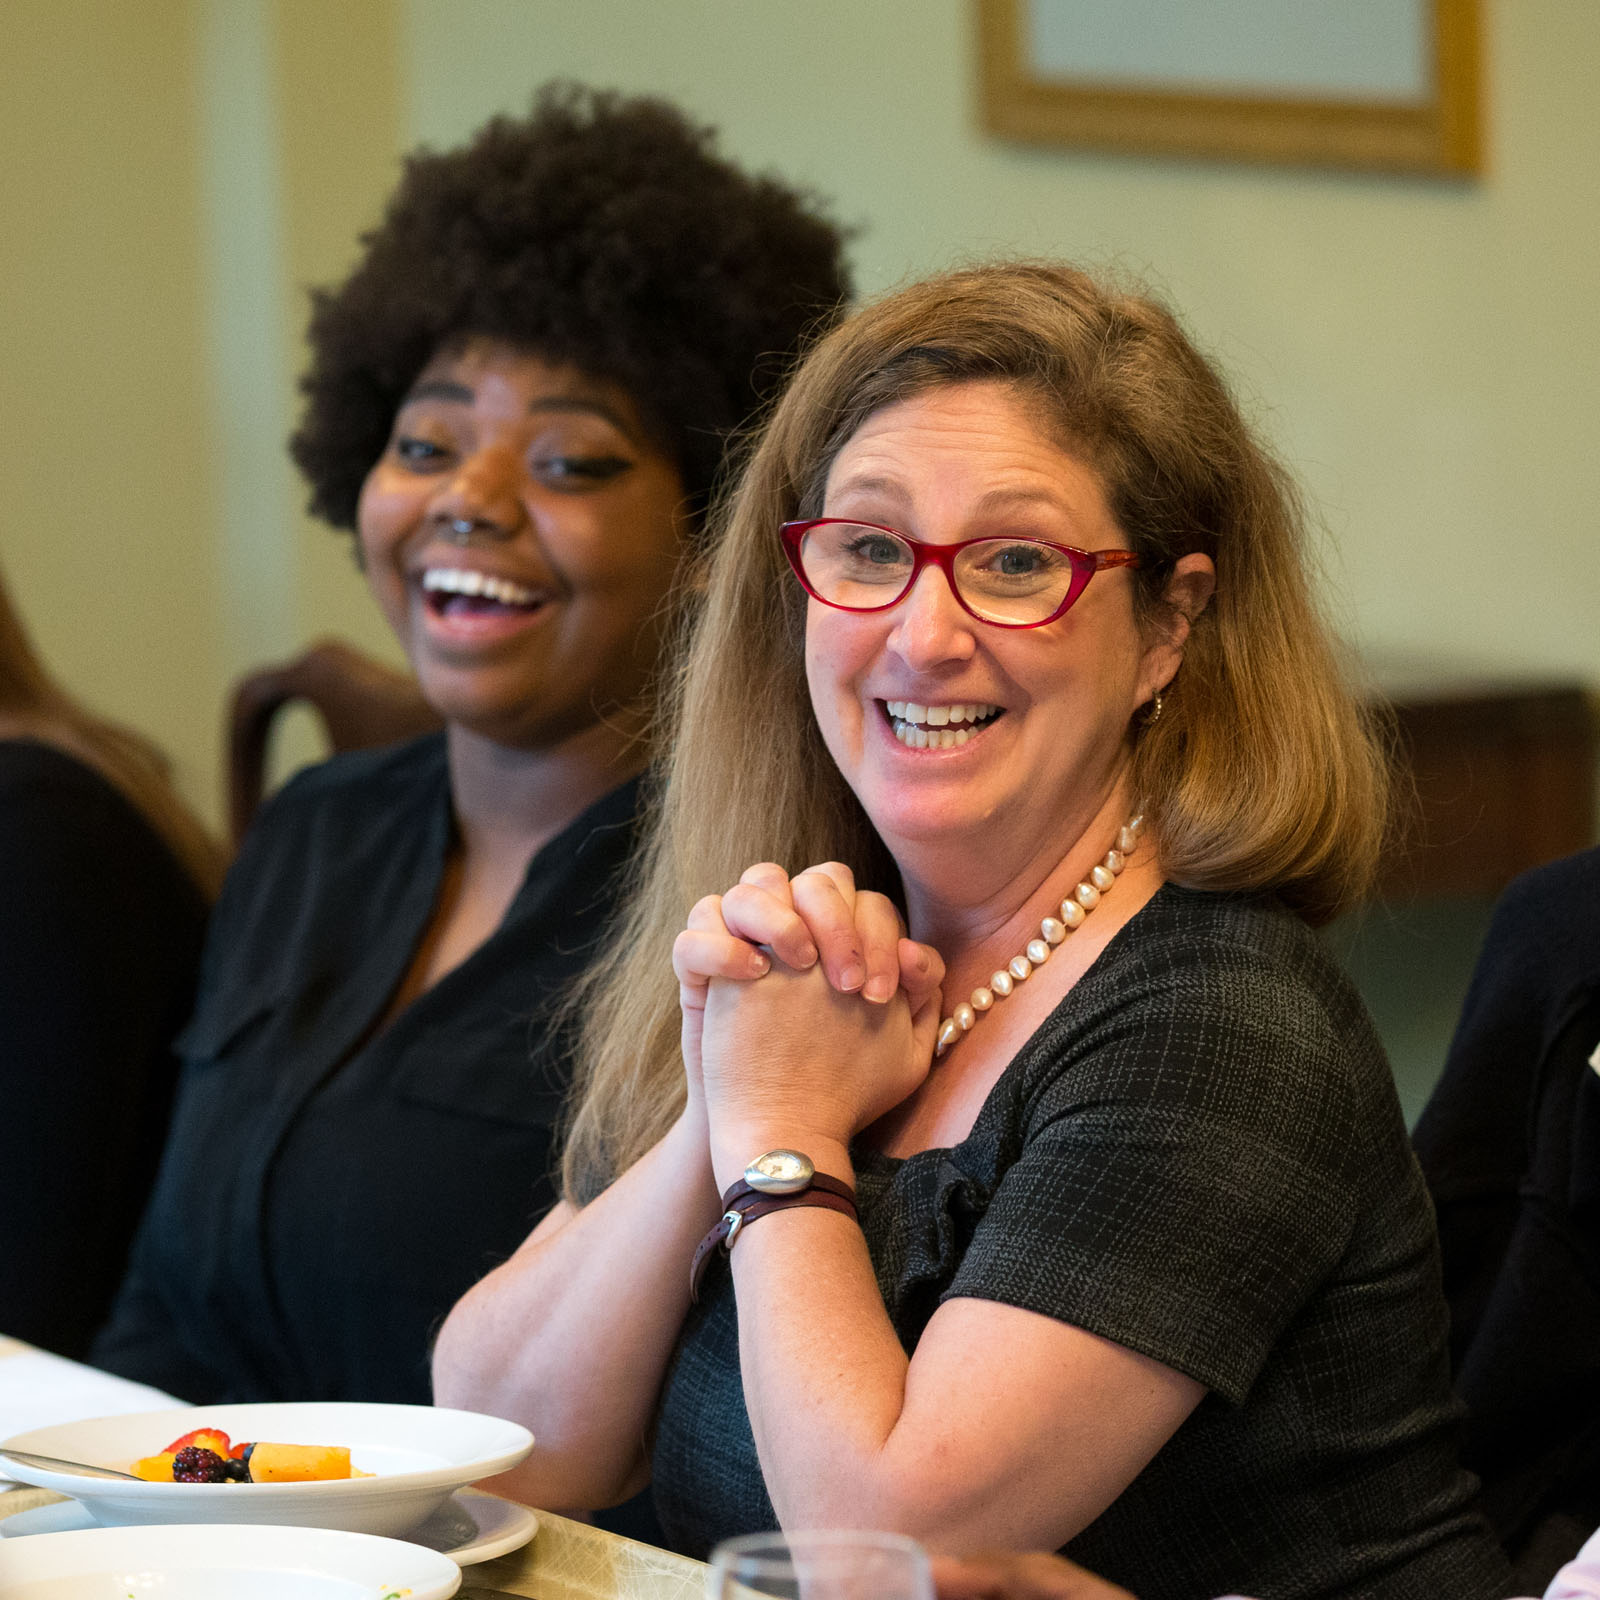 Lawyer and writer Dahlia Lithwick, contributing editor at Newsweek and senior editor at Slate, has lunch with students before a lecture at Randolph College.